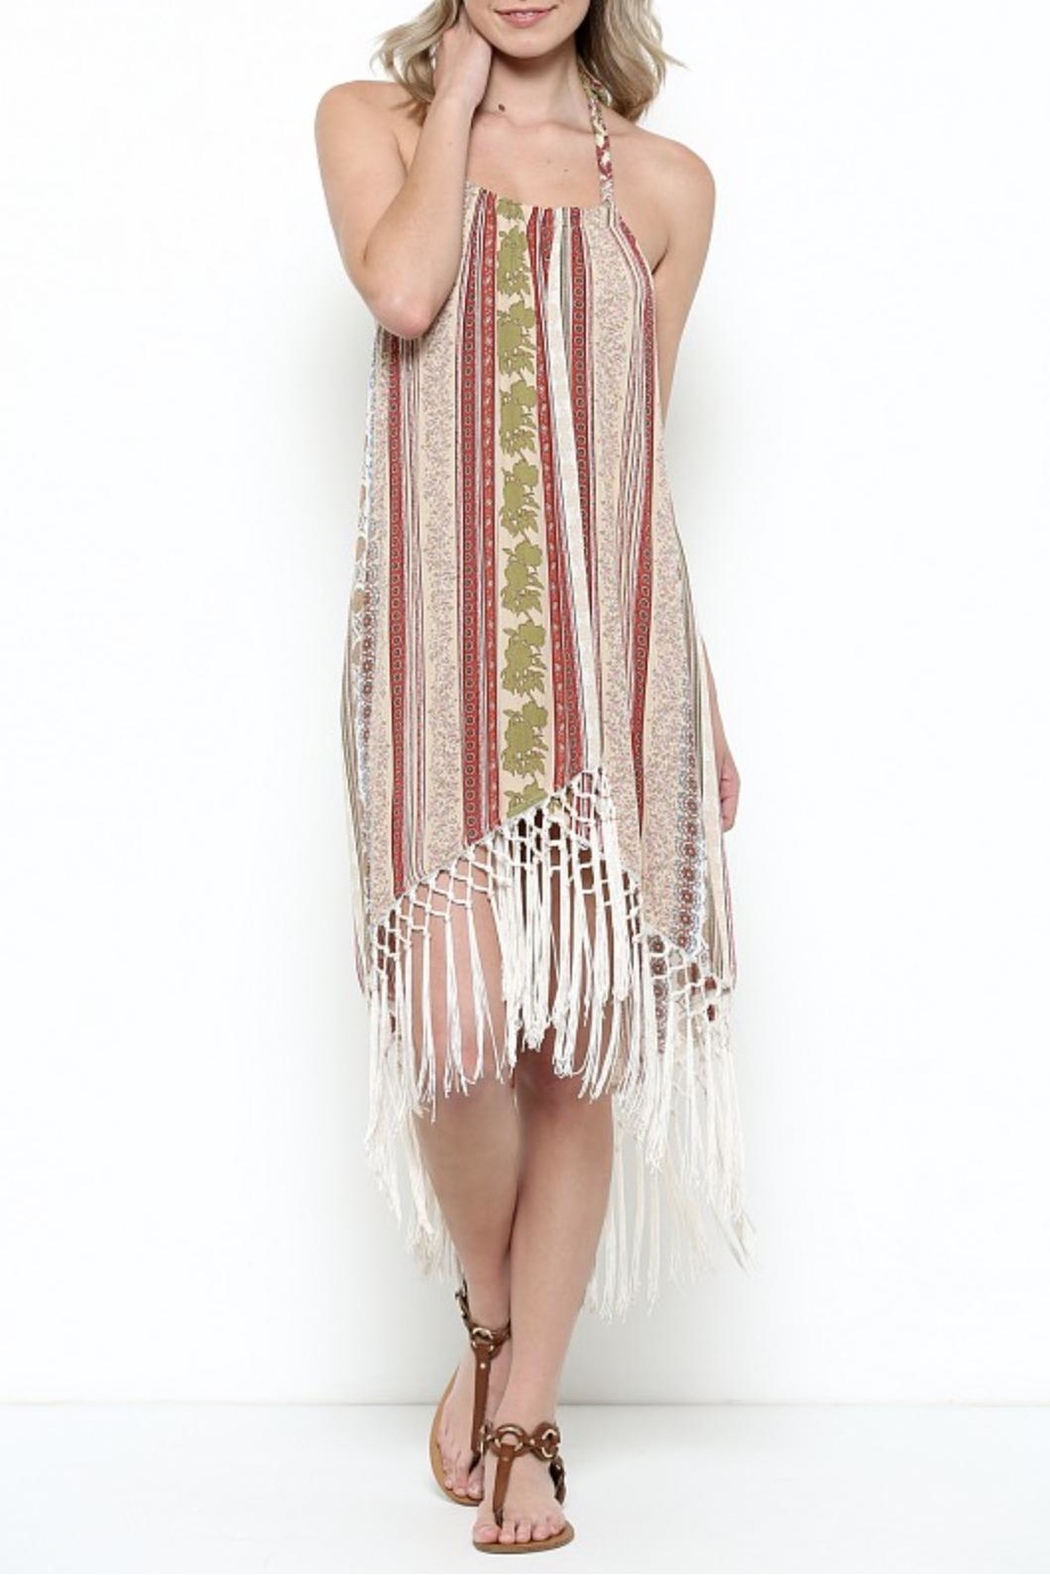 Illa Illa Fringe Halter Dress - Main Image